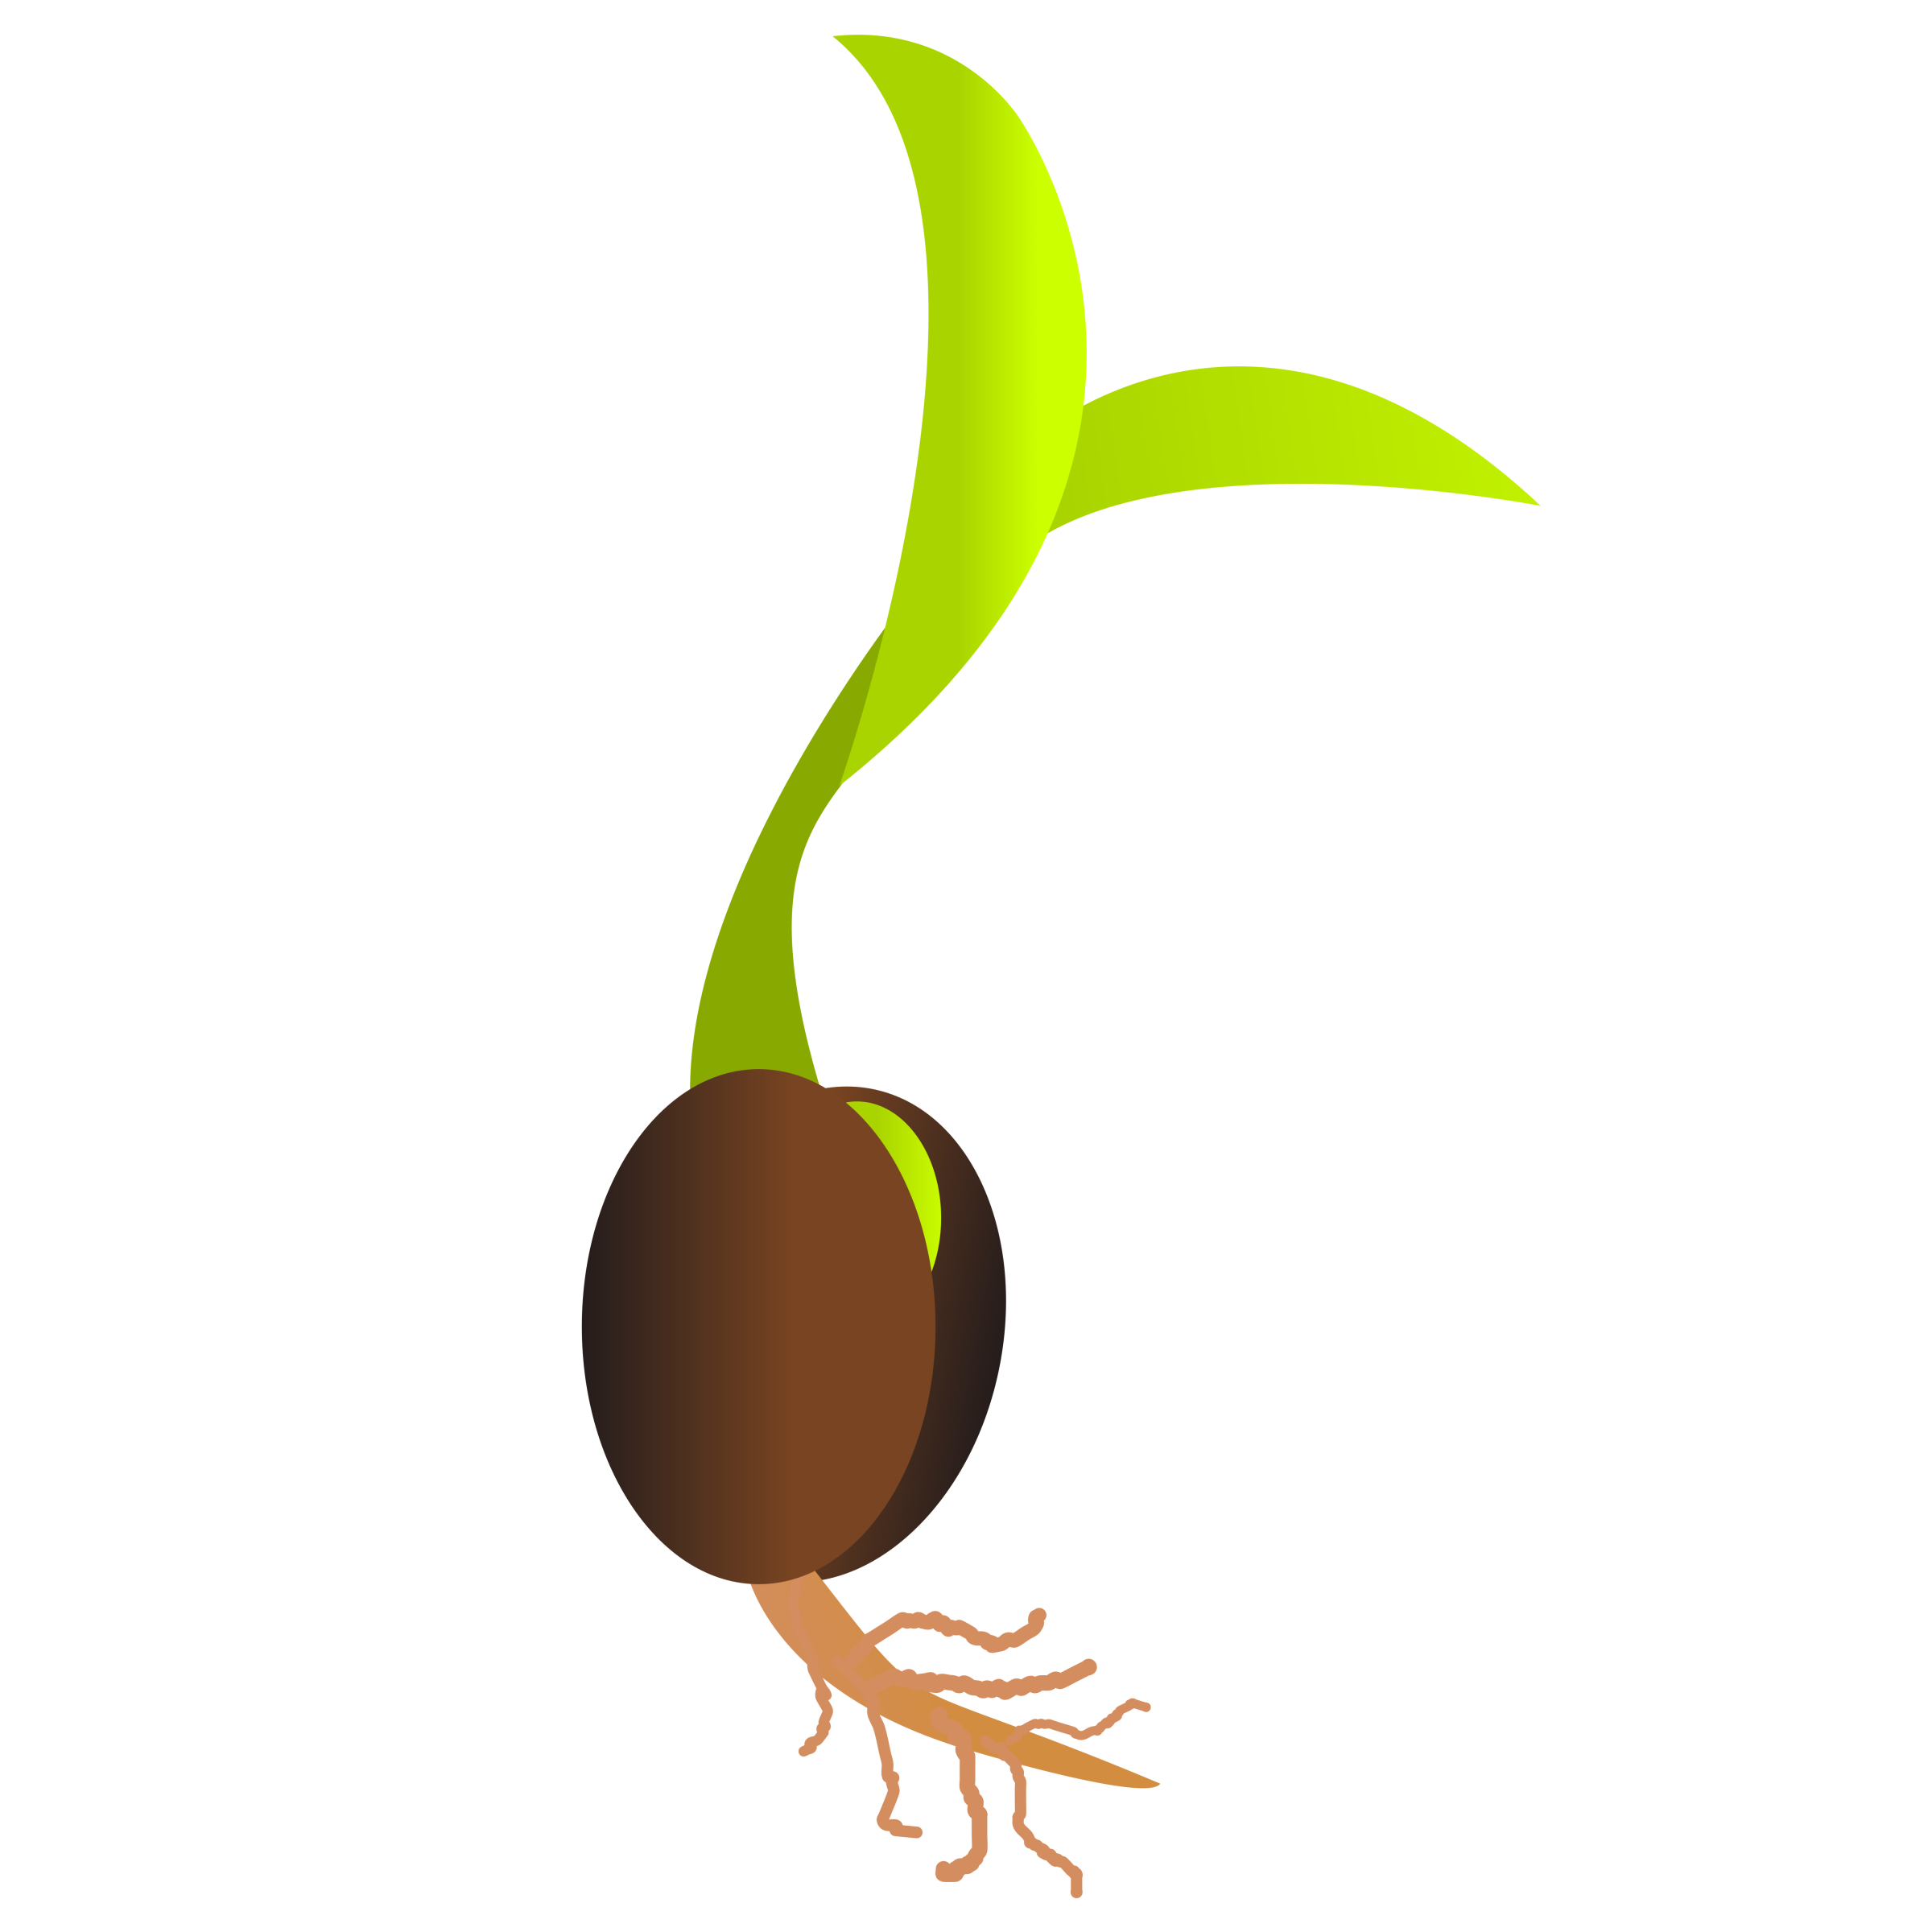 PNG Of A Seed